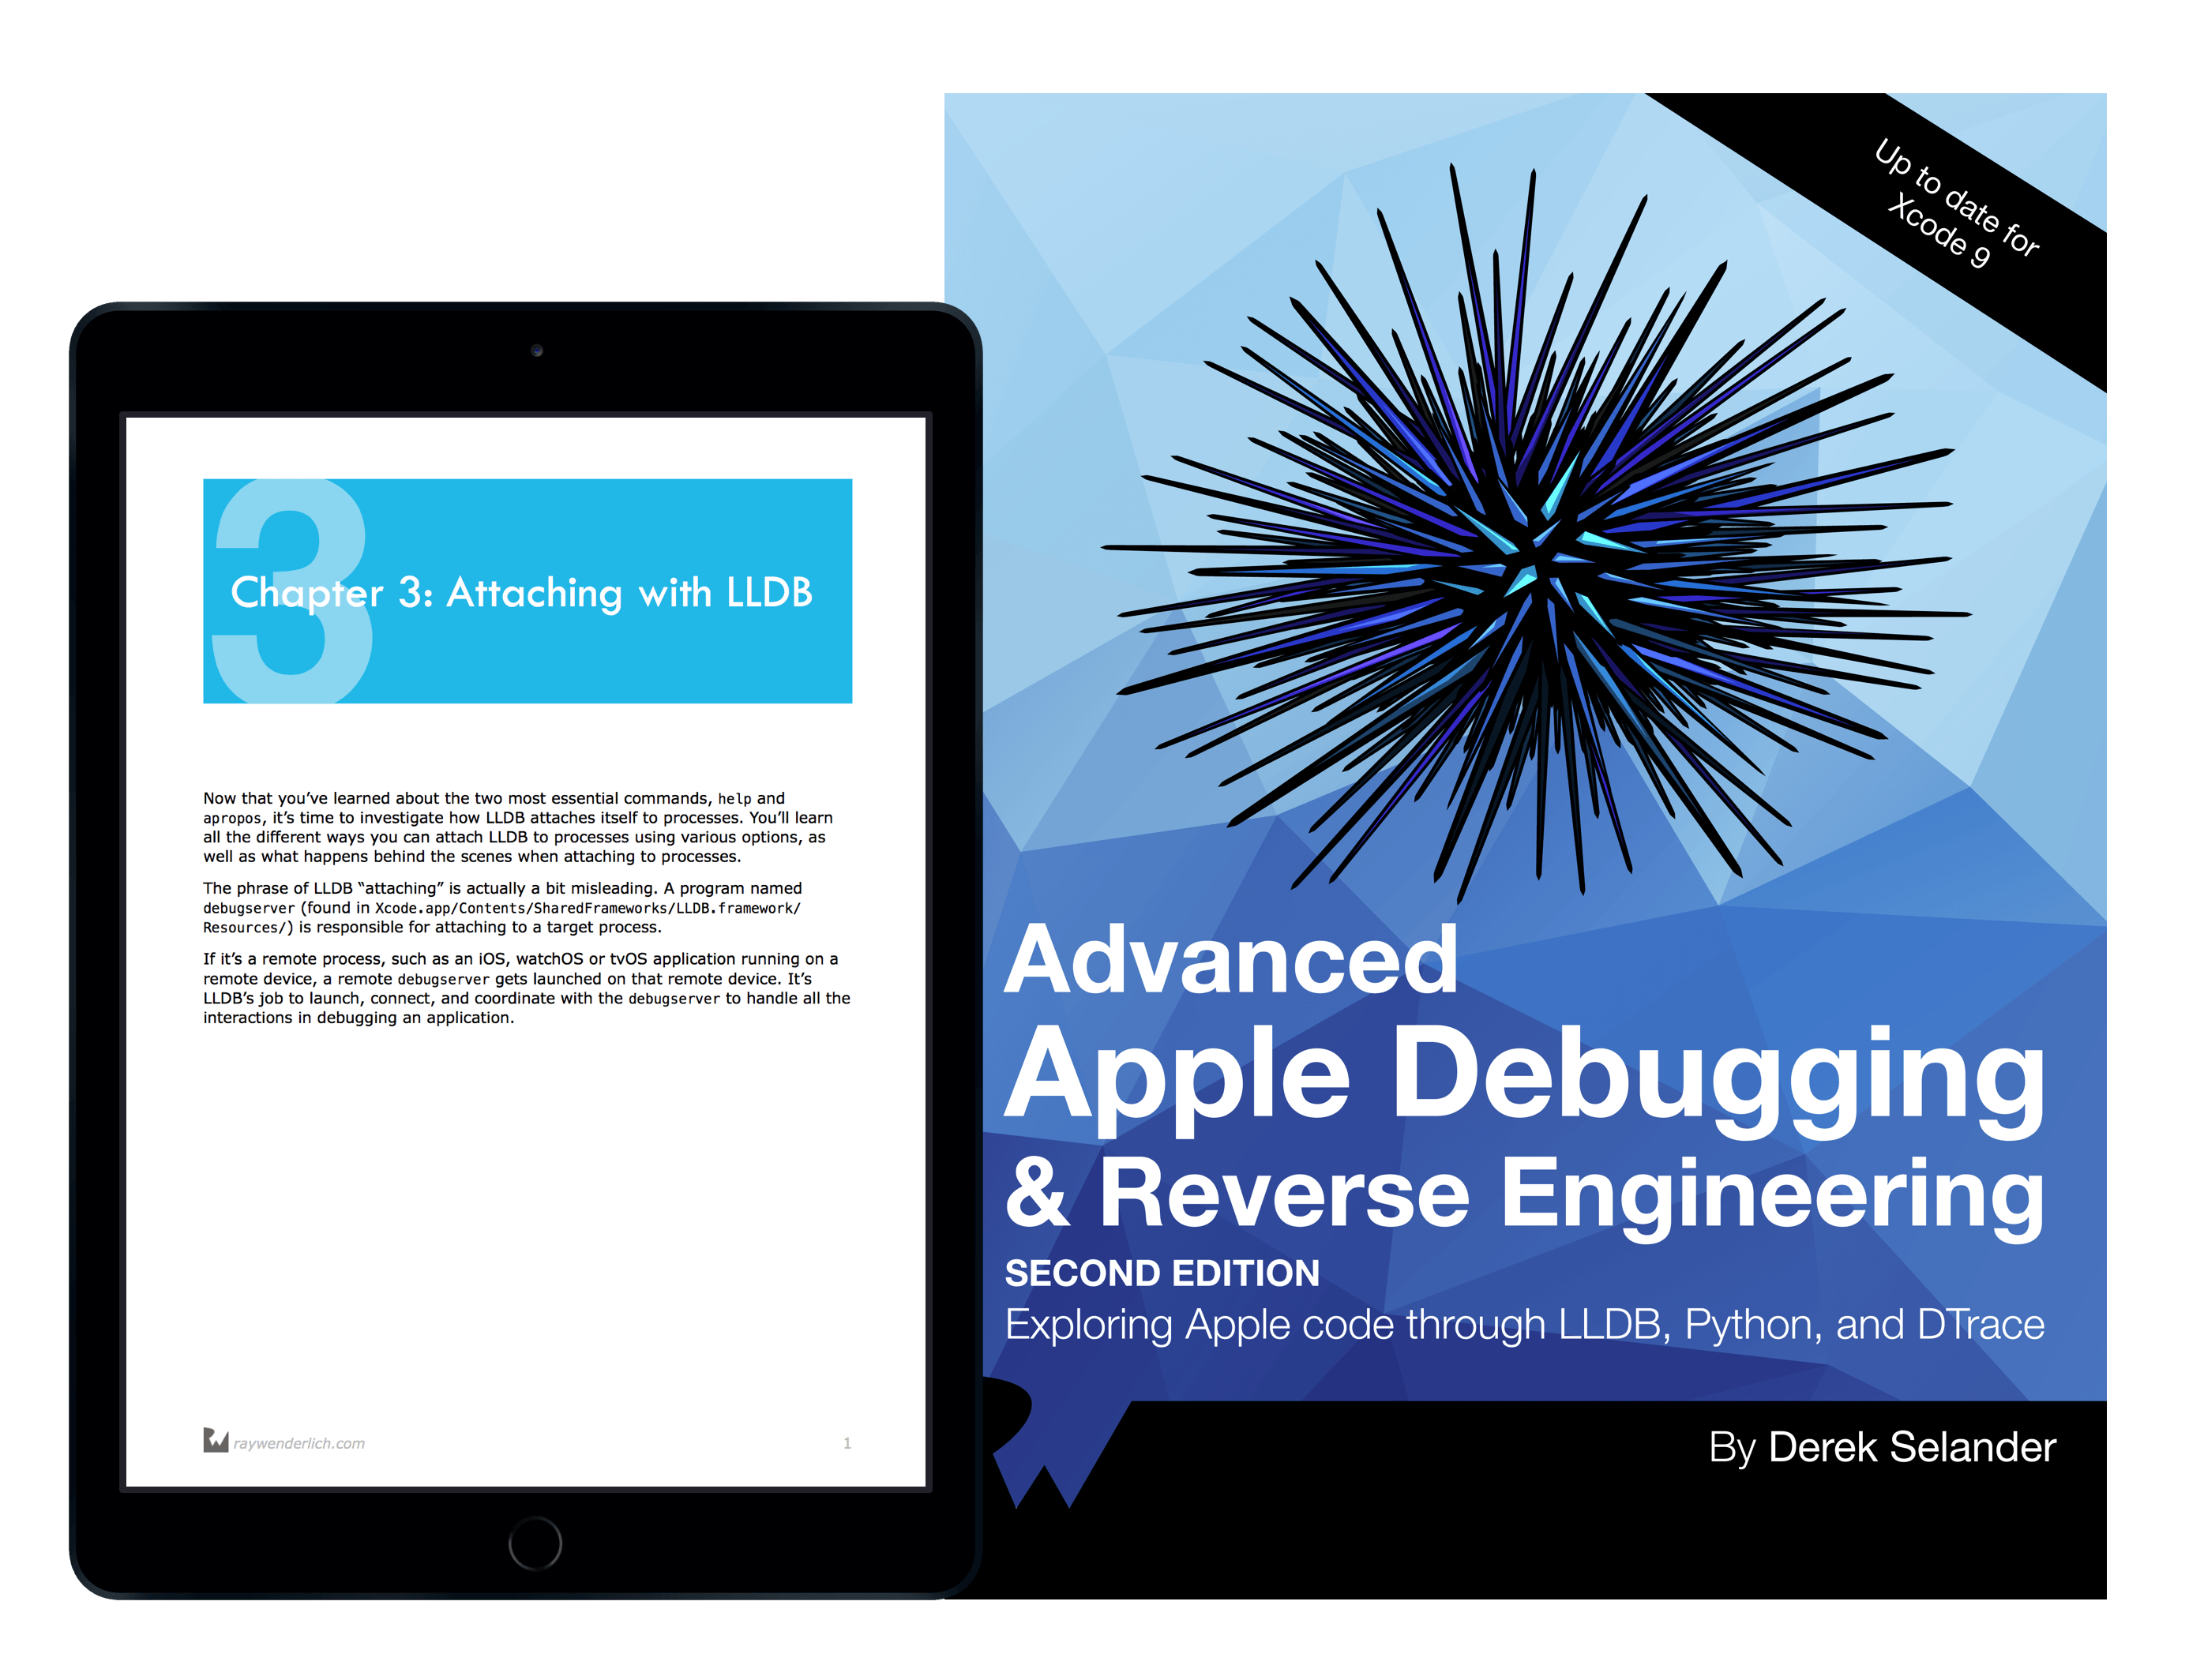 Advanced Apple Debugging Reverse Engineering